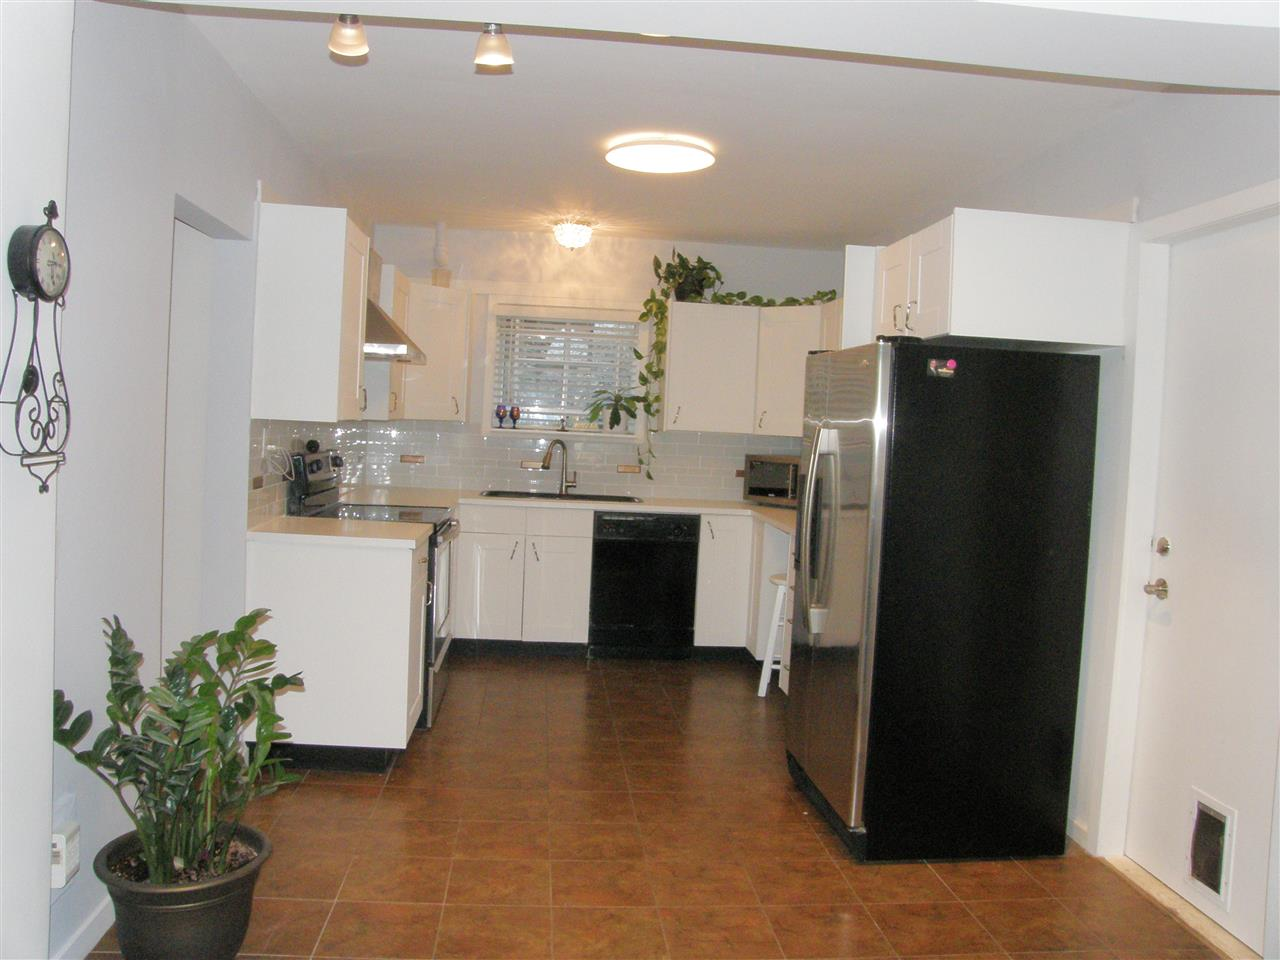 Photo 5: Photos: 788 CALVERHALL Street in North Vancouver: Calverhall House for sale : MLS® # R2245708